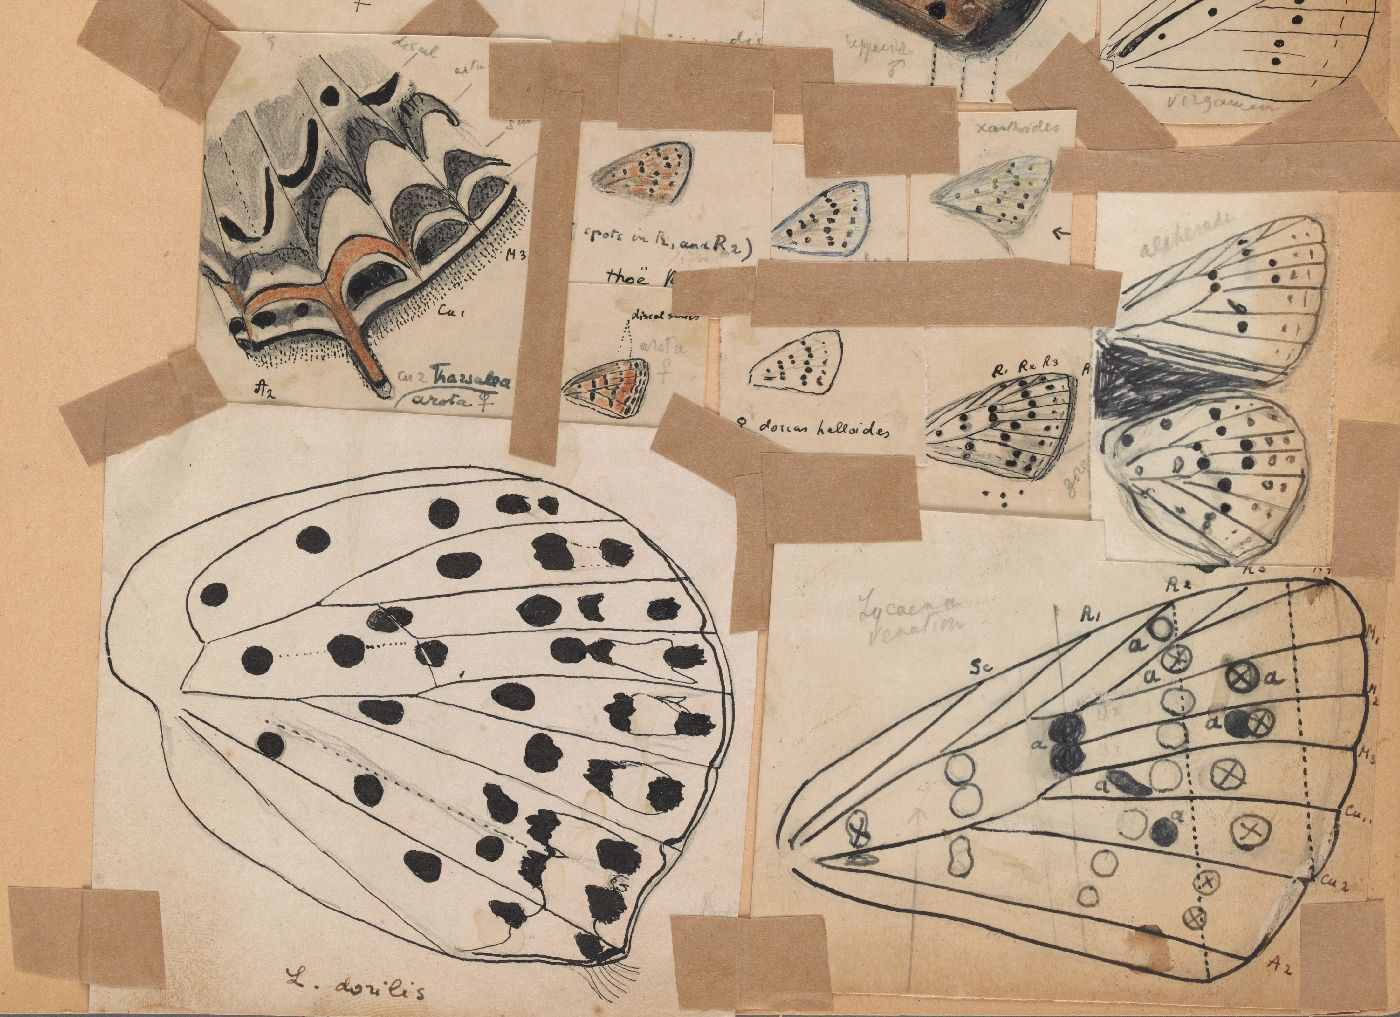 Fine Line Art : Vladimir nabokov's scientific butterfly illustrations